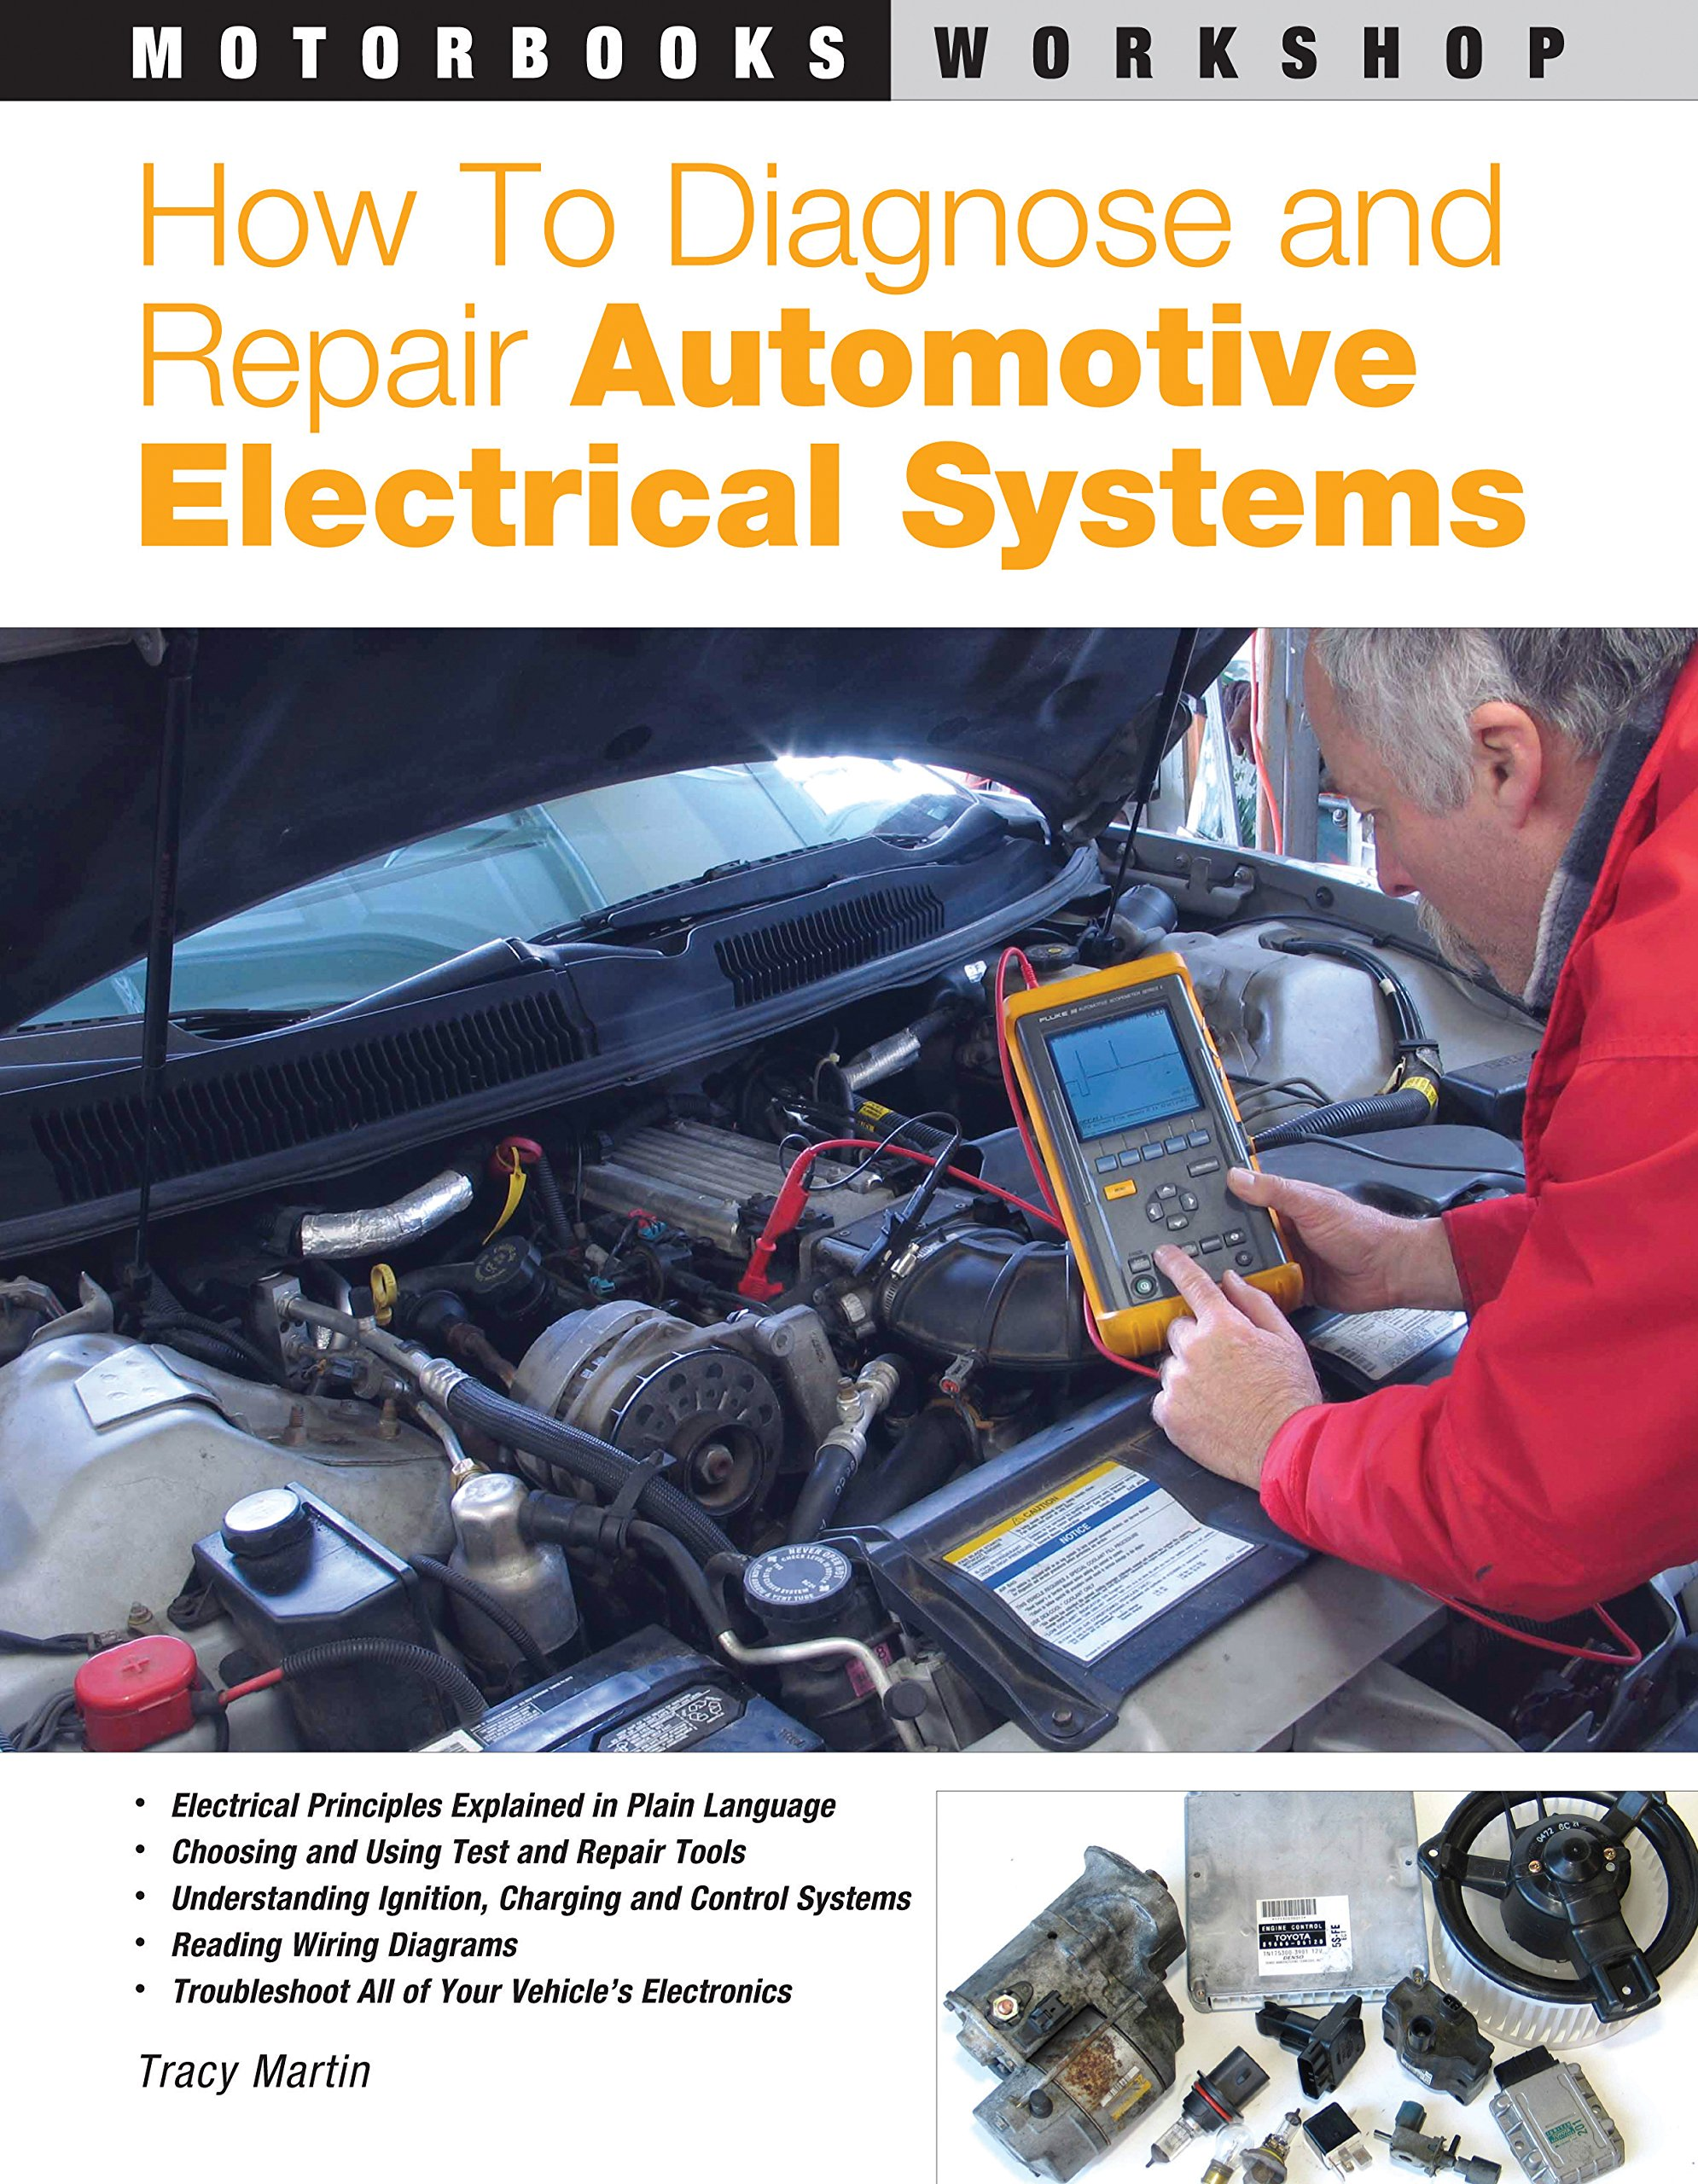 How to Diagnose and Repair Automotive Electrical Systems (Motorbooks  Workshop): Amazon.co.uk: Tracy Martin: 8601404402180: Books